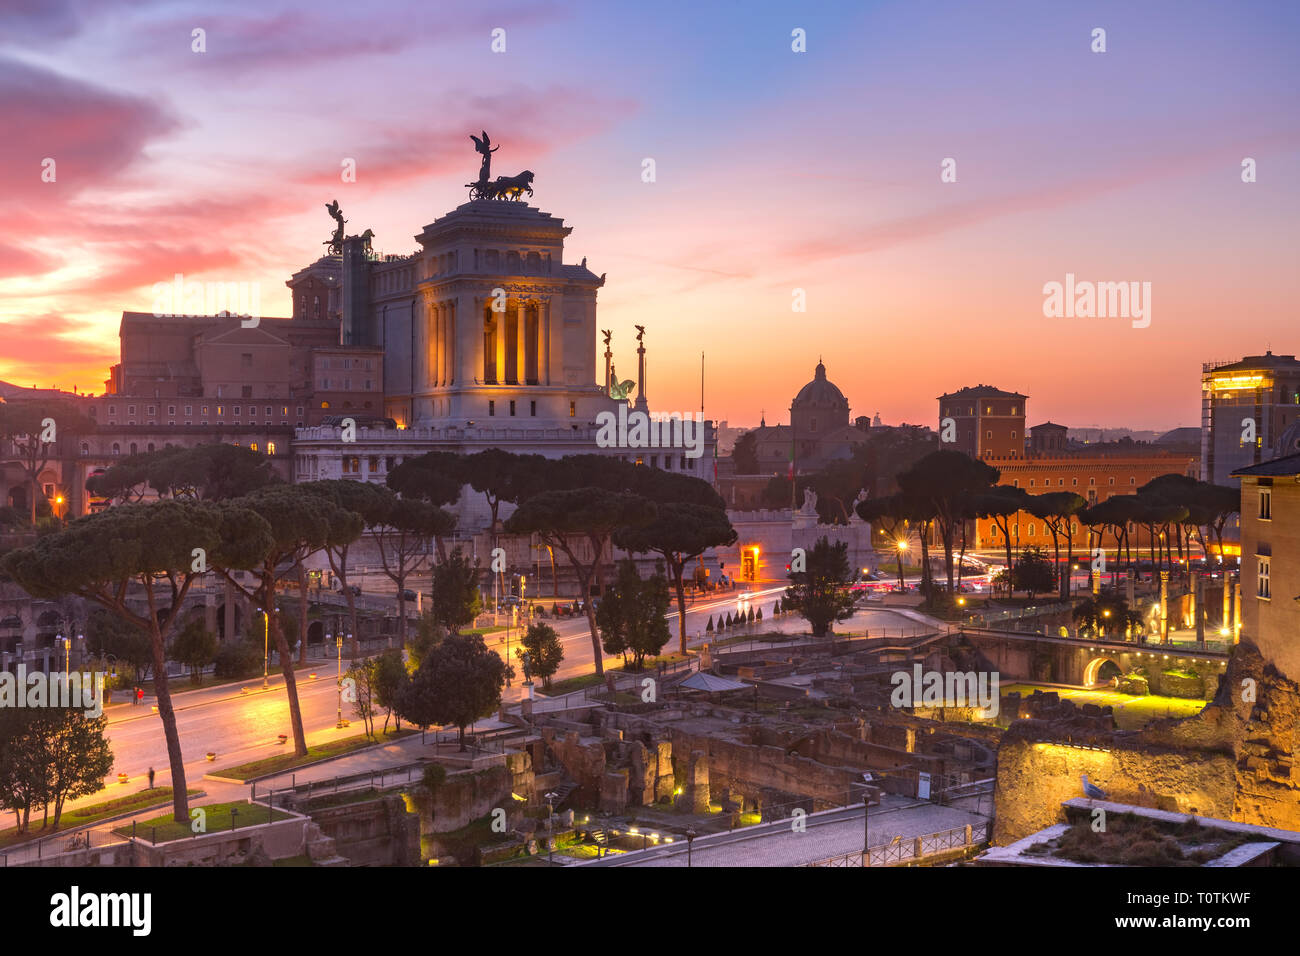 Altar of the Fatherland at sunrise, Rome, Italy - Stock Image